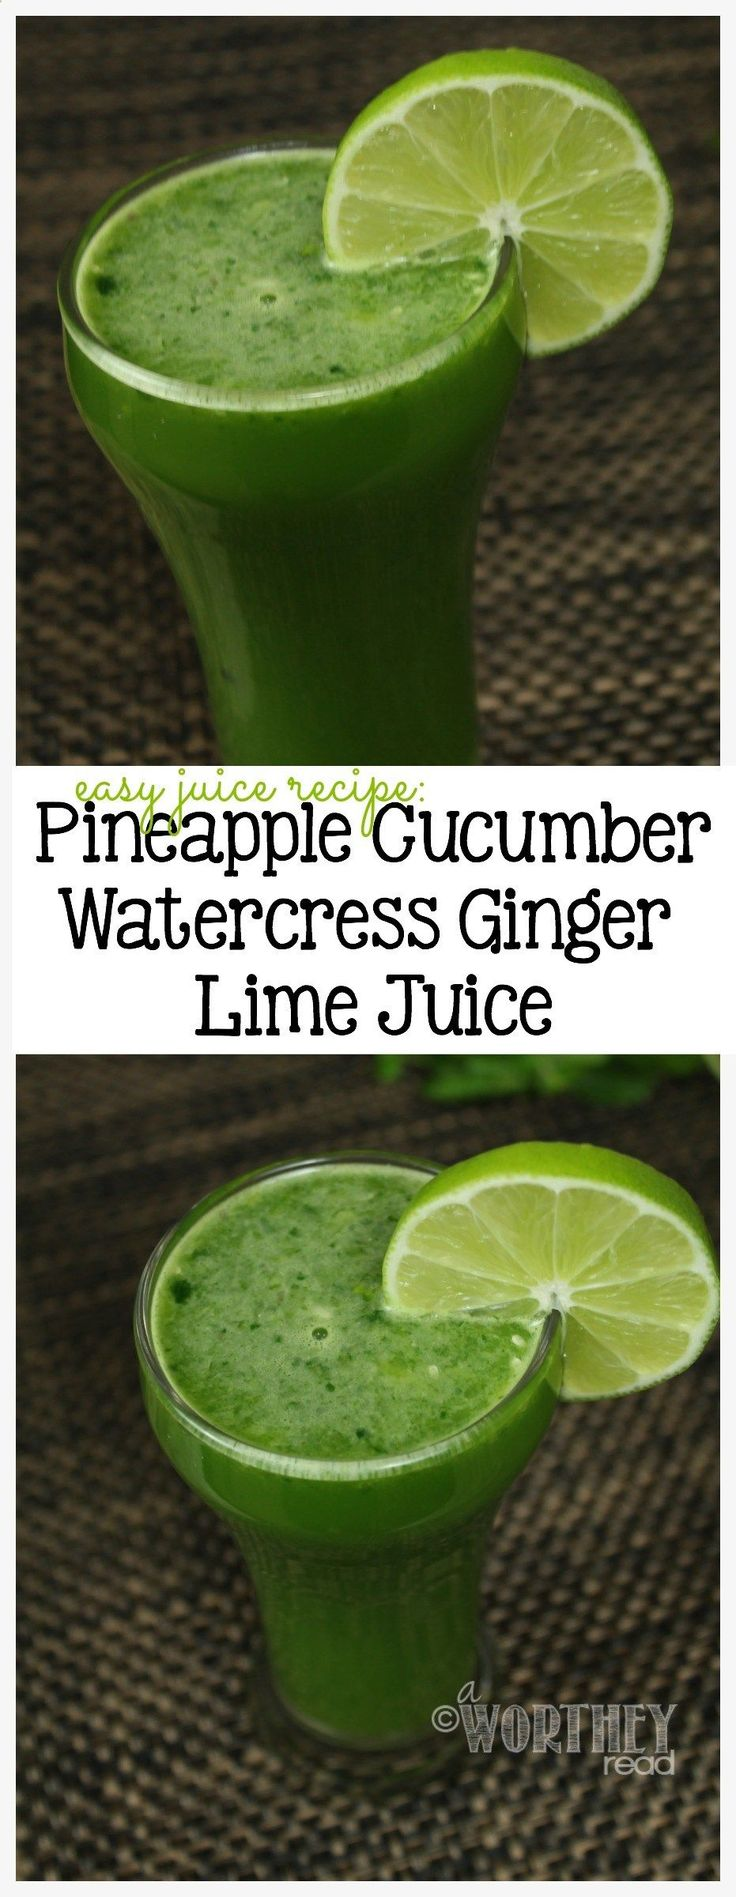 Juicing has taken a new lease on life! If youre looking for easy juice recipes, heres a great one with cucumbers, pineapples, watercress and lime! The benefits of juicing are just amazing! Save to your board and check out this easy juice recipe!